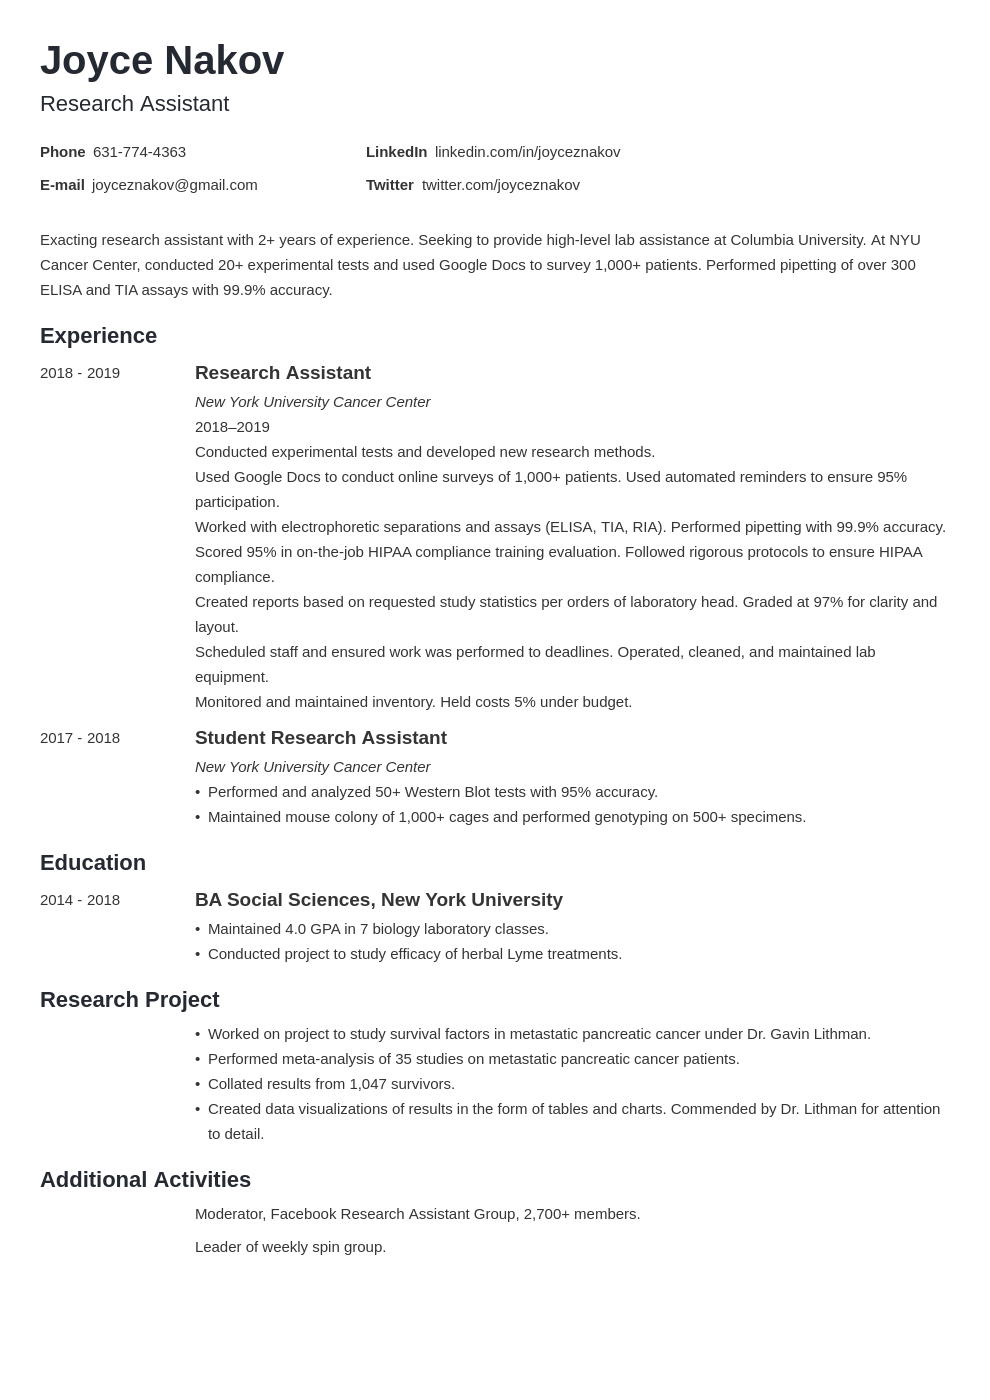 research assistant template minimo uk